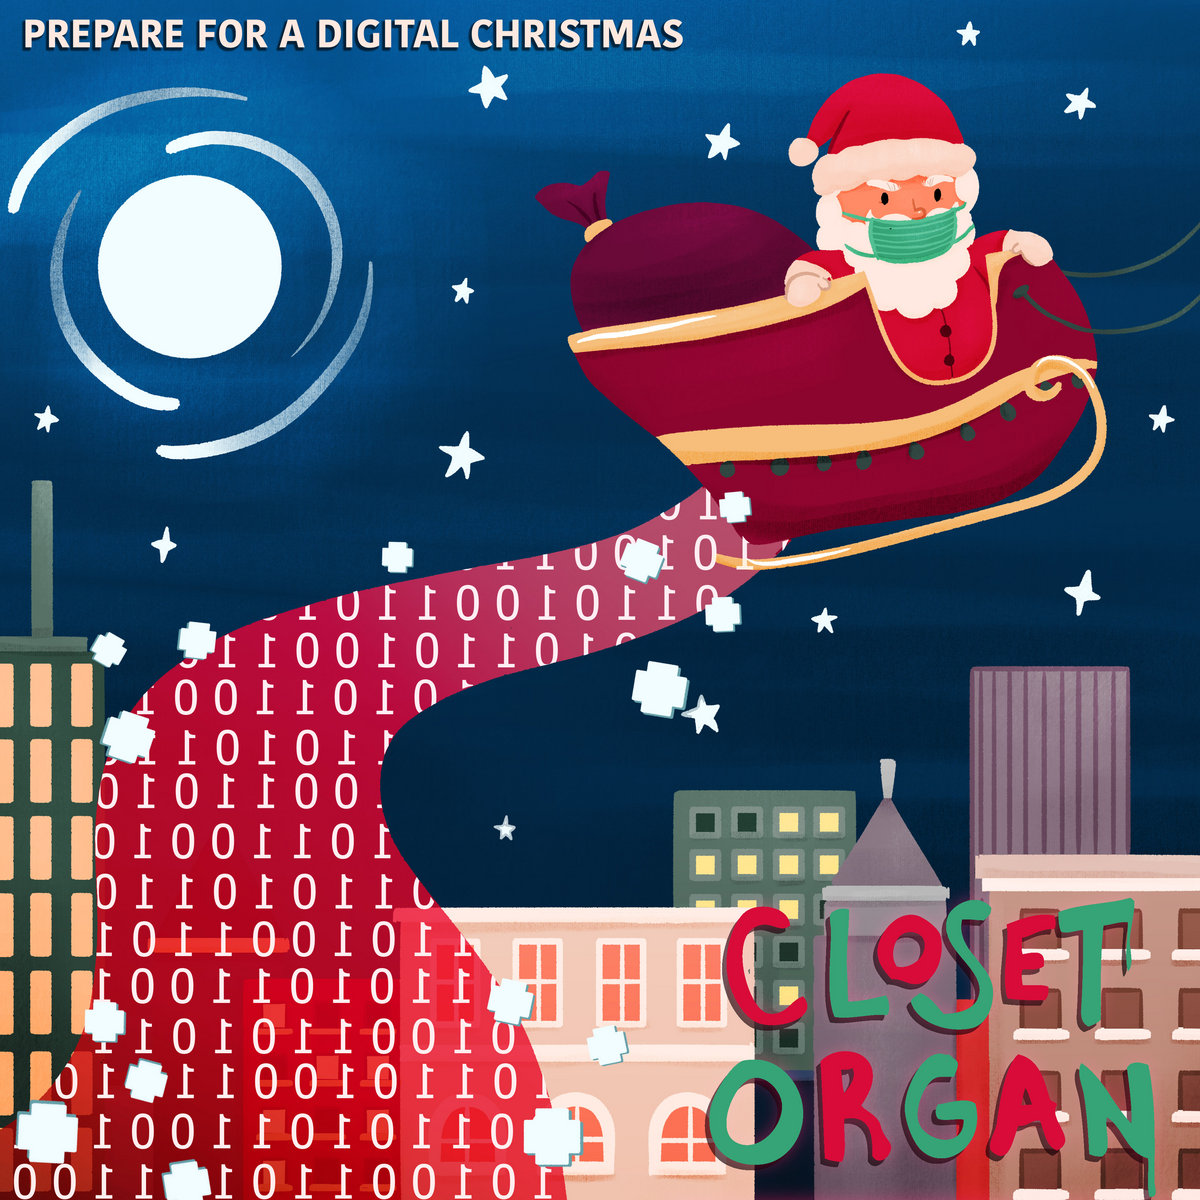 Closet Organ - Prepare for a Digital Christmas